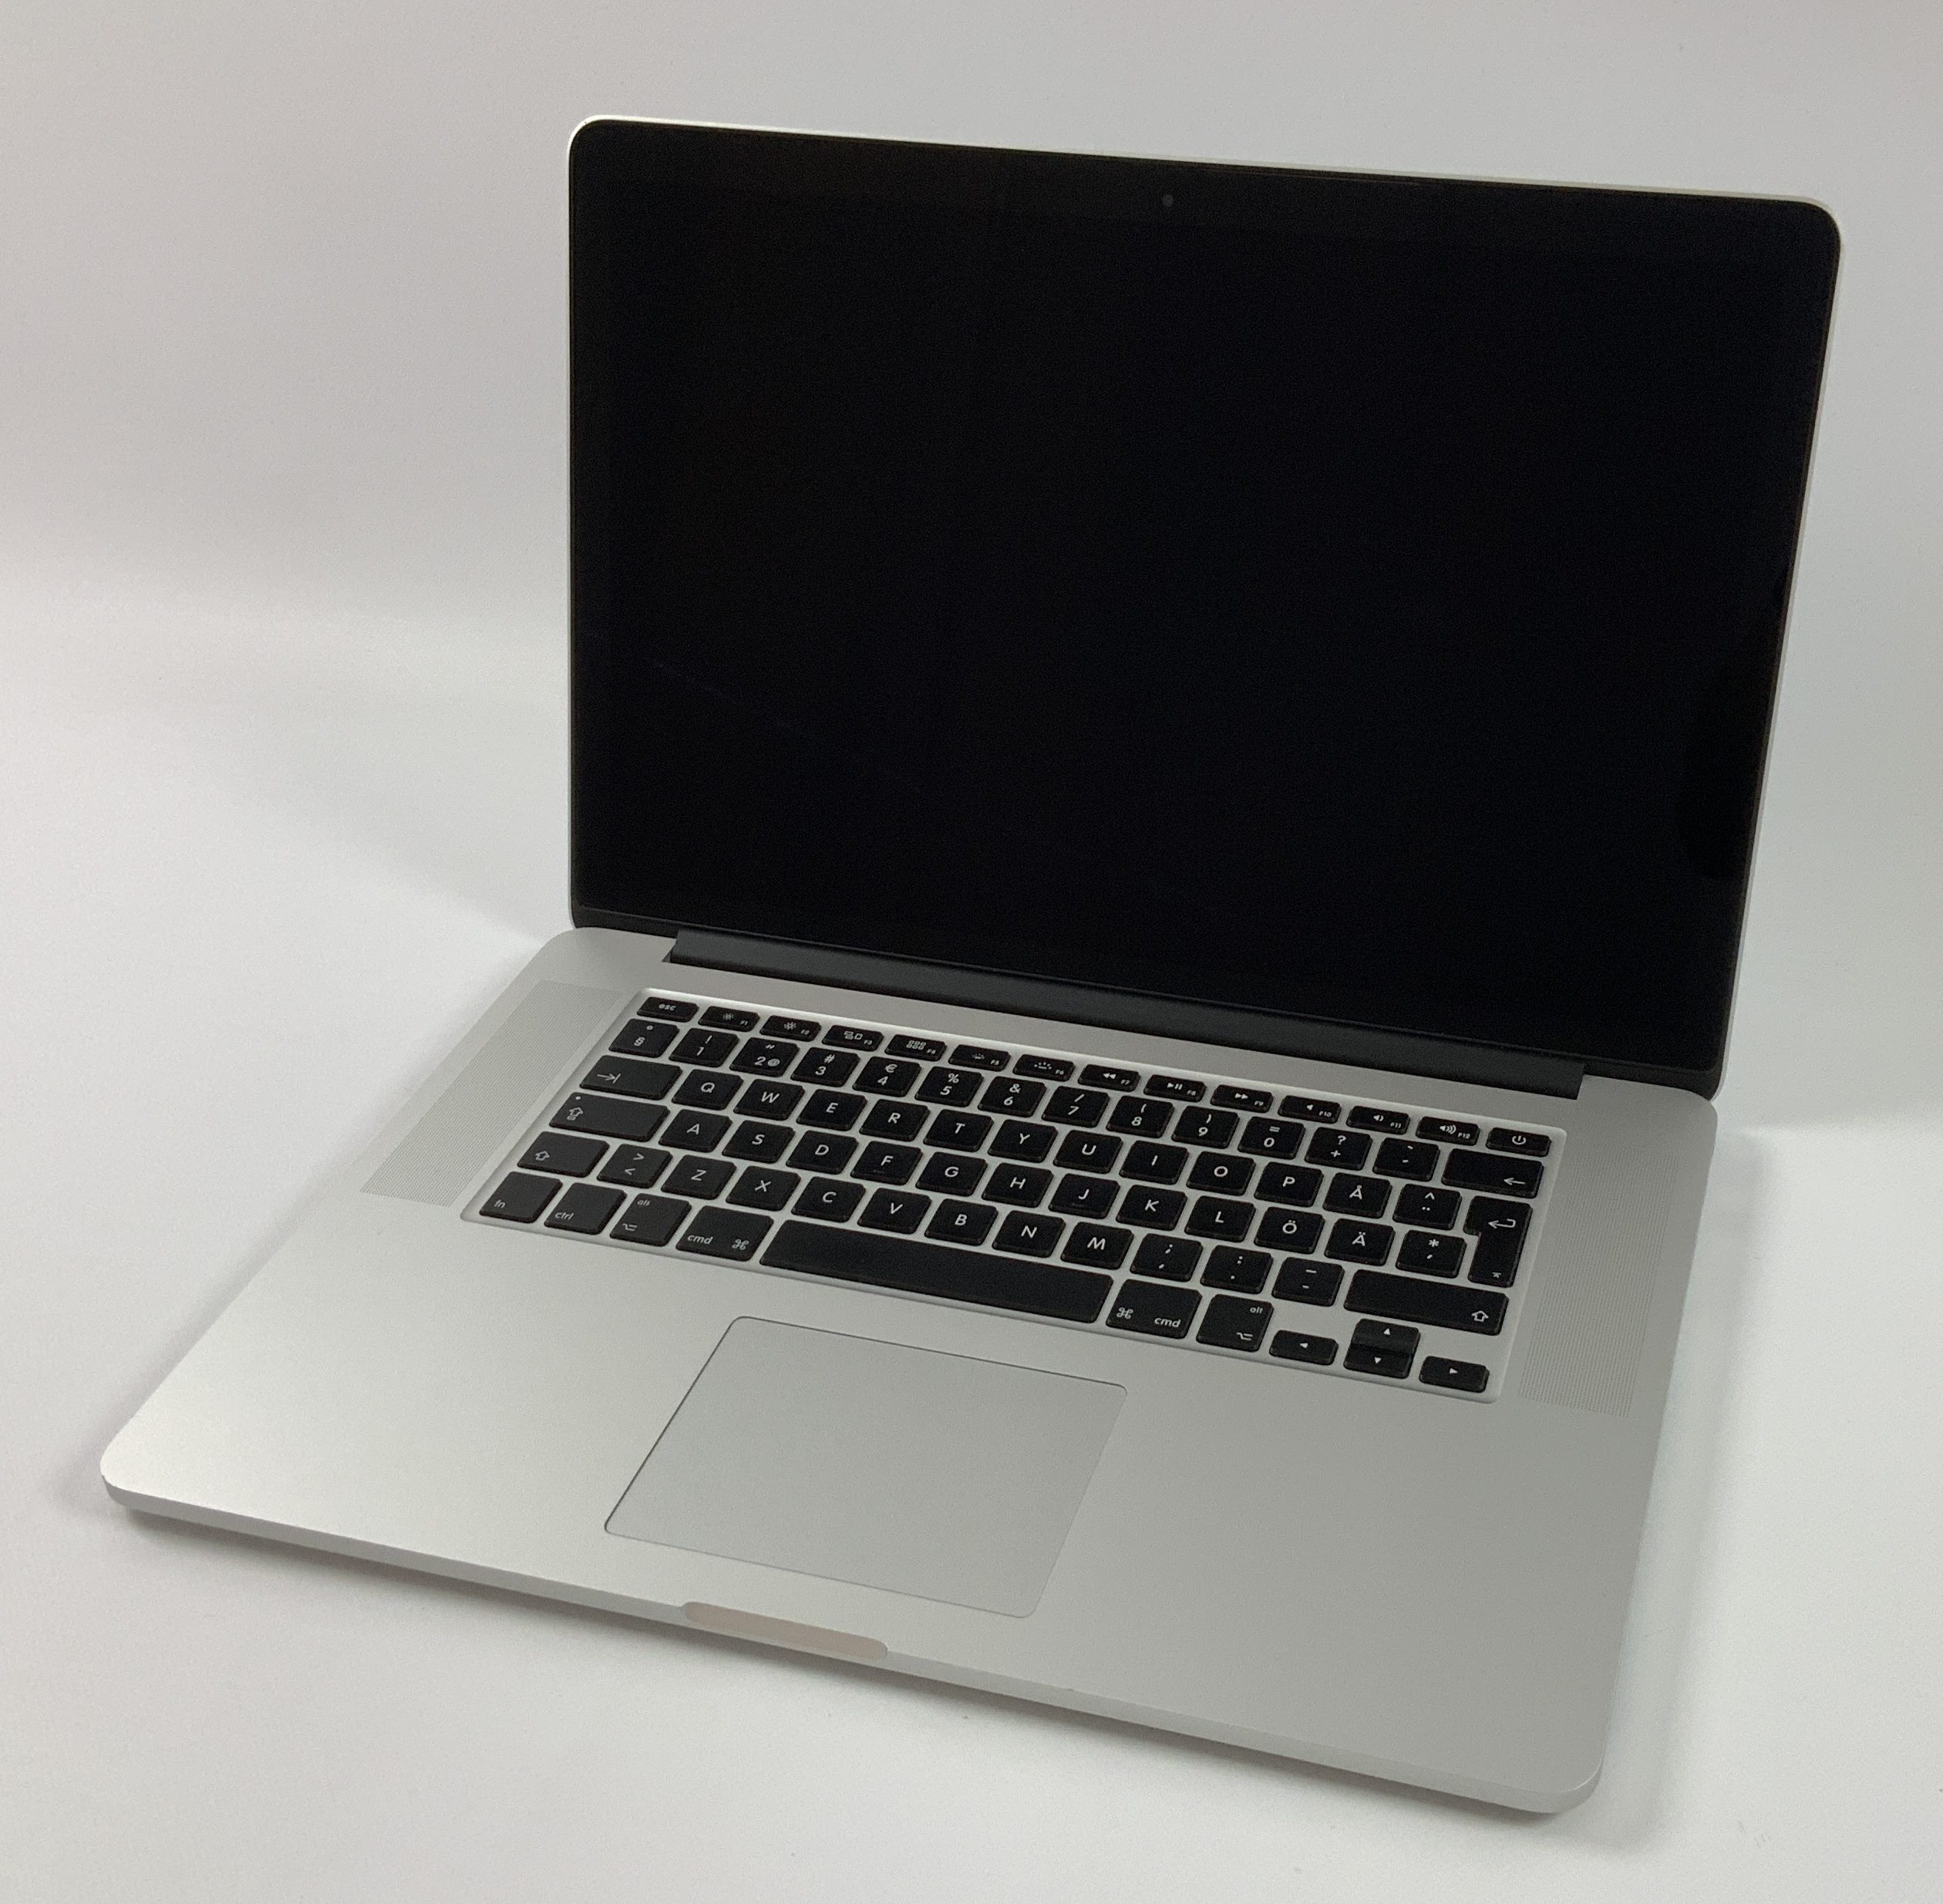 "MacBook Pro Retina 15"" Mid 2014 (Intel Quad-Core i7 2.2 GHz 16 GB RAM 256 GB SSD), Intel Quad-Core i7 2.2 GHz, 16 GB RAM, 256 GB SSD, obraz 1"